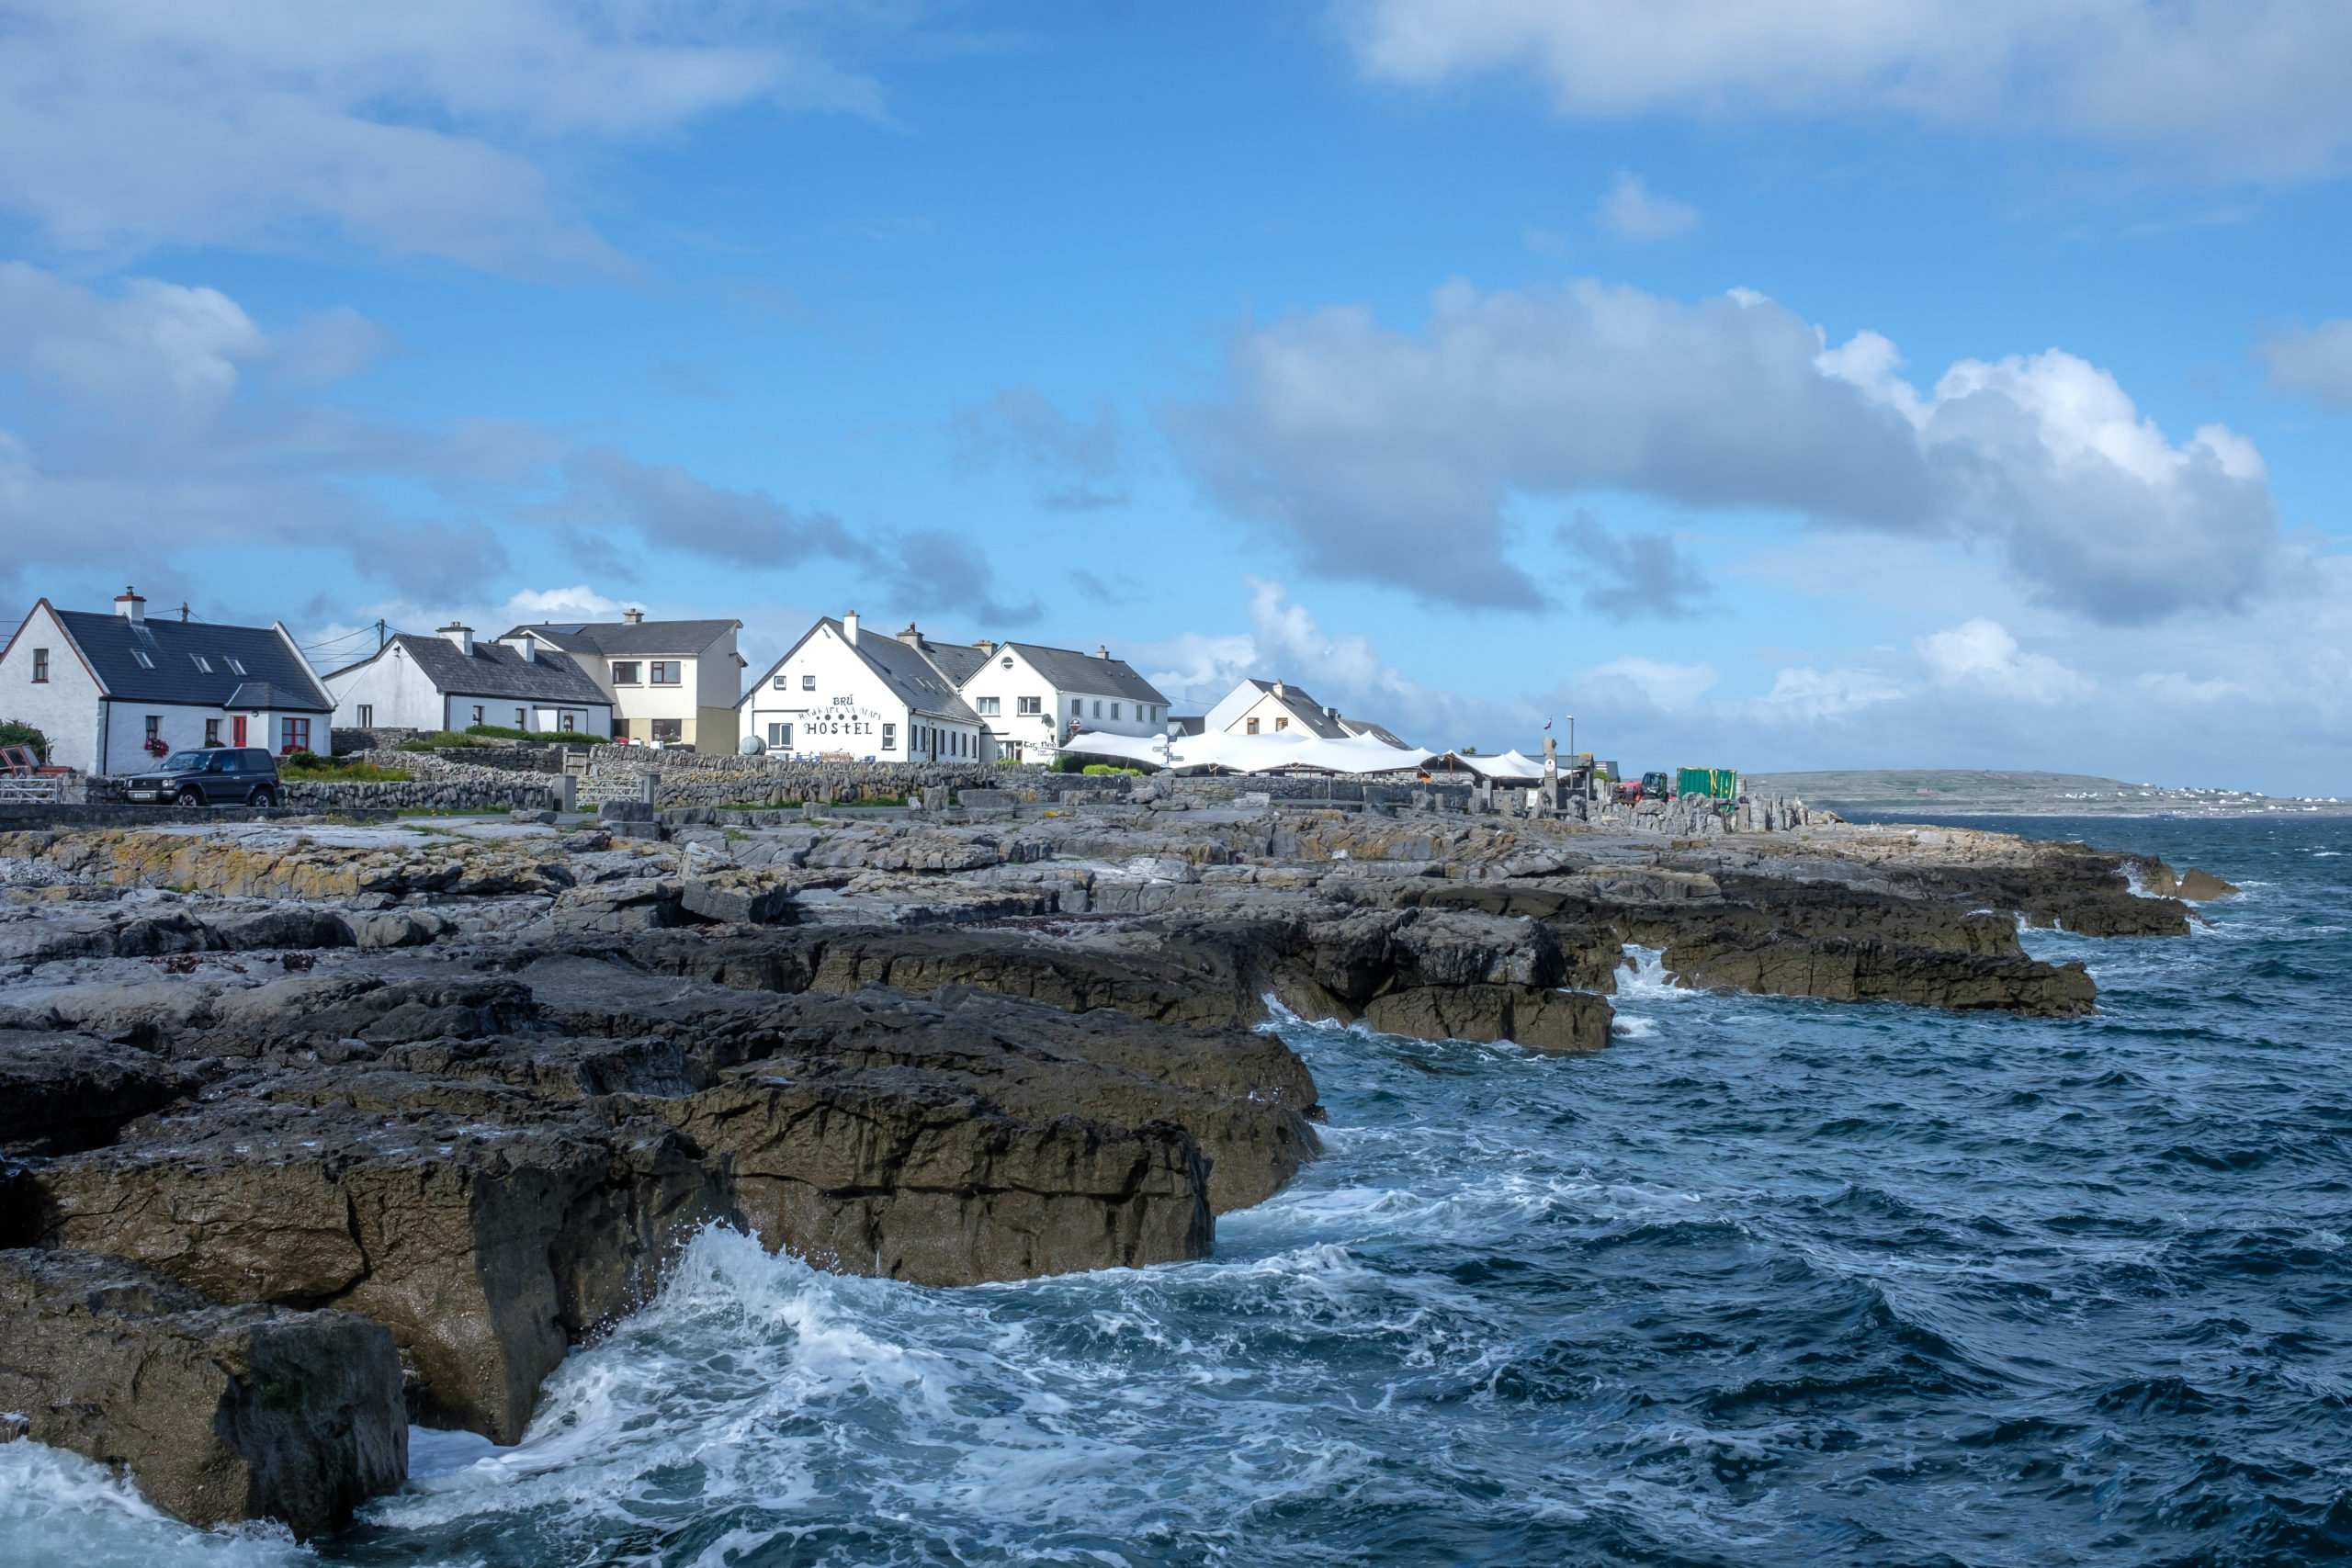 Houses along the coast in the Aran Islands